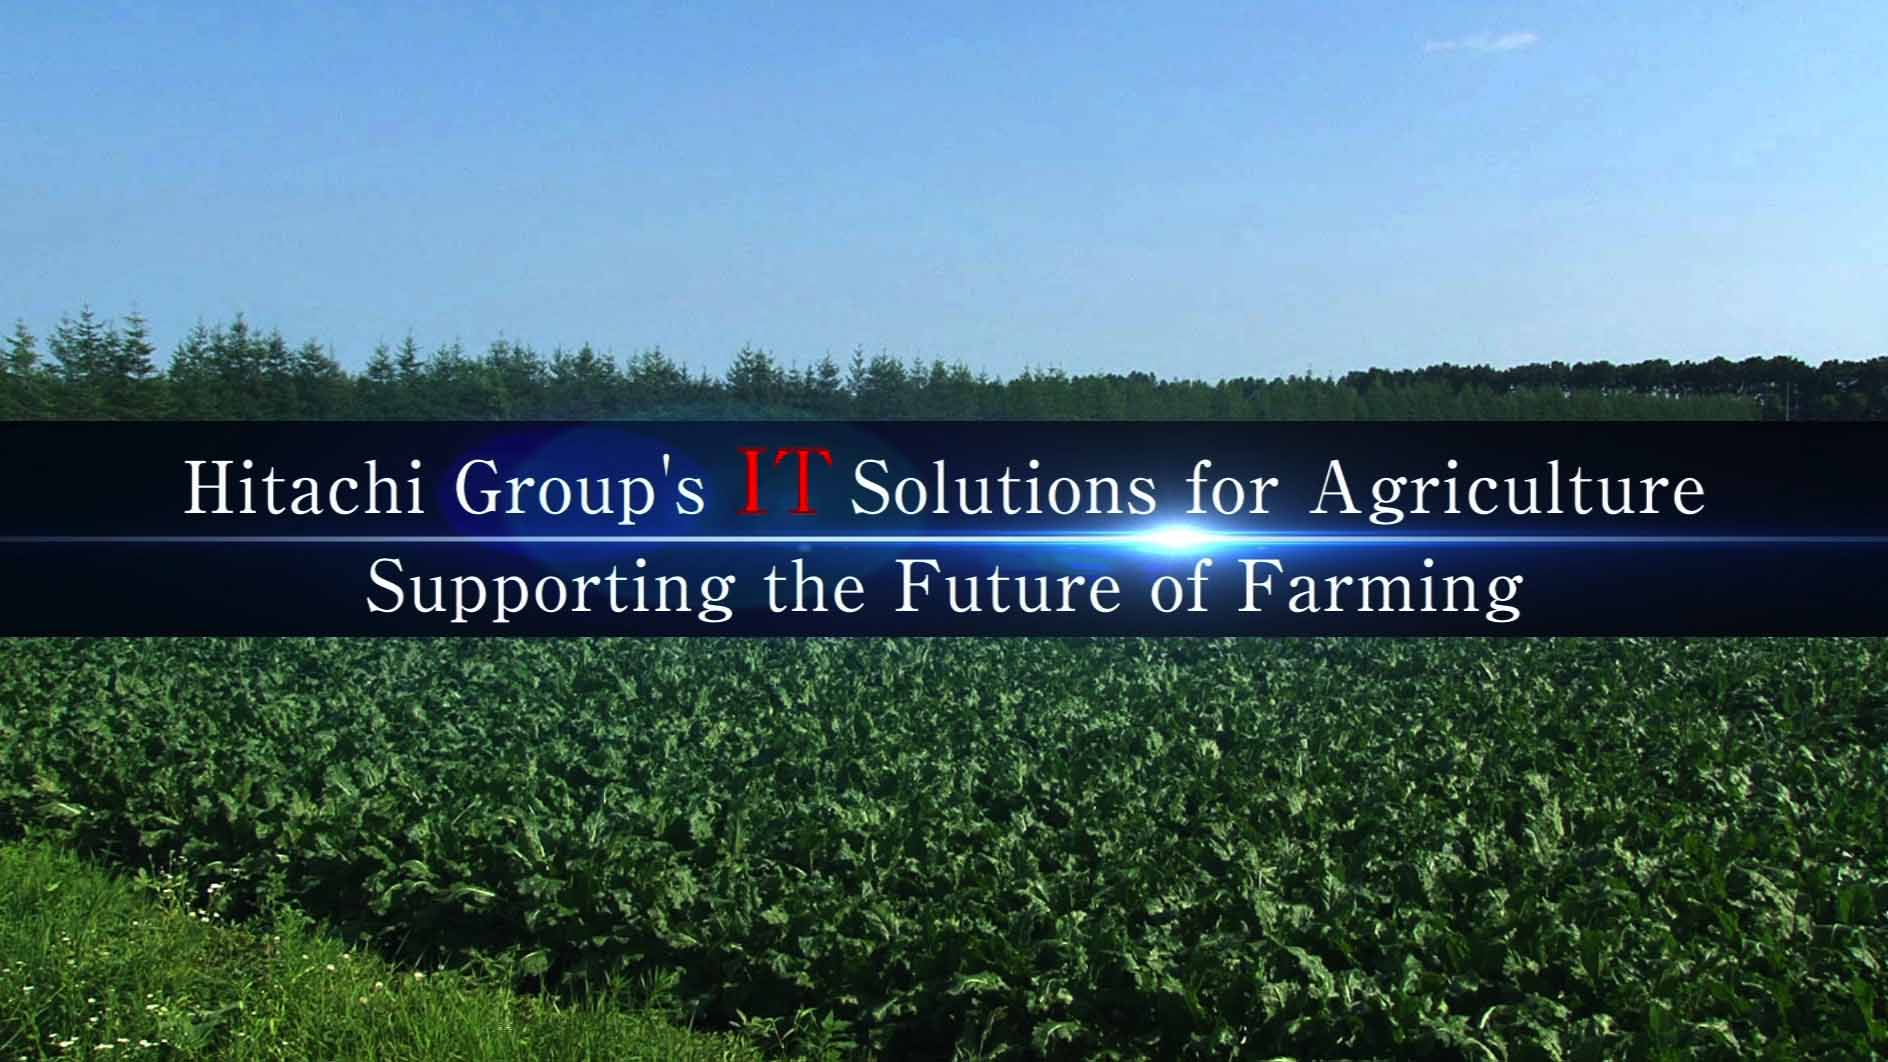 Hitachi Group's IT Solutions for AgricultureSupporting the Future of Farming